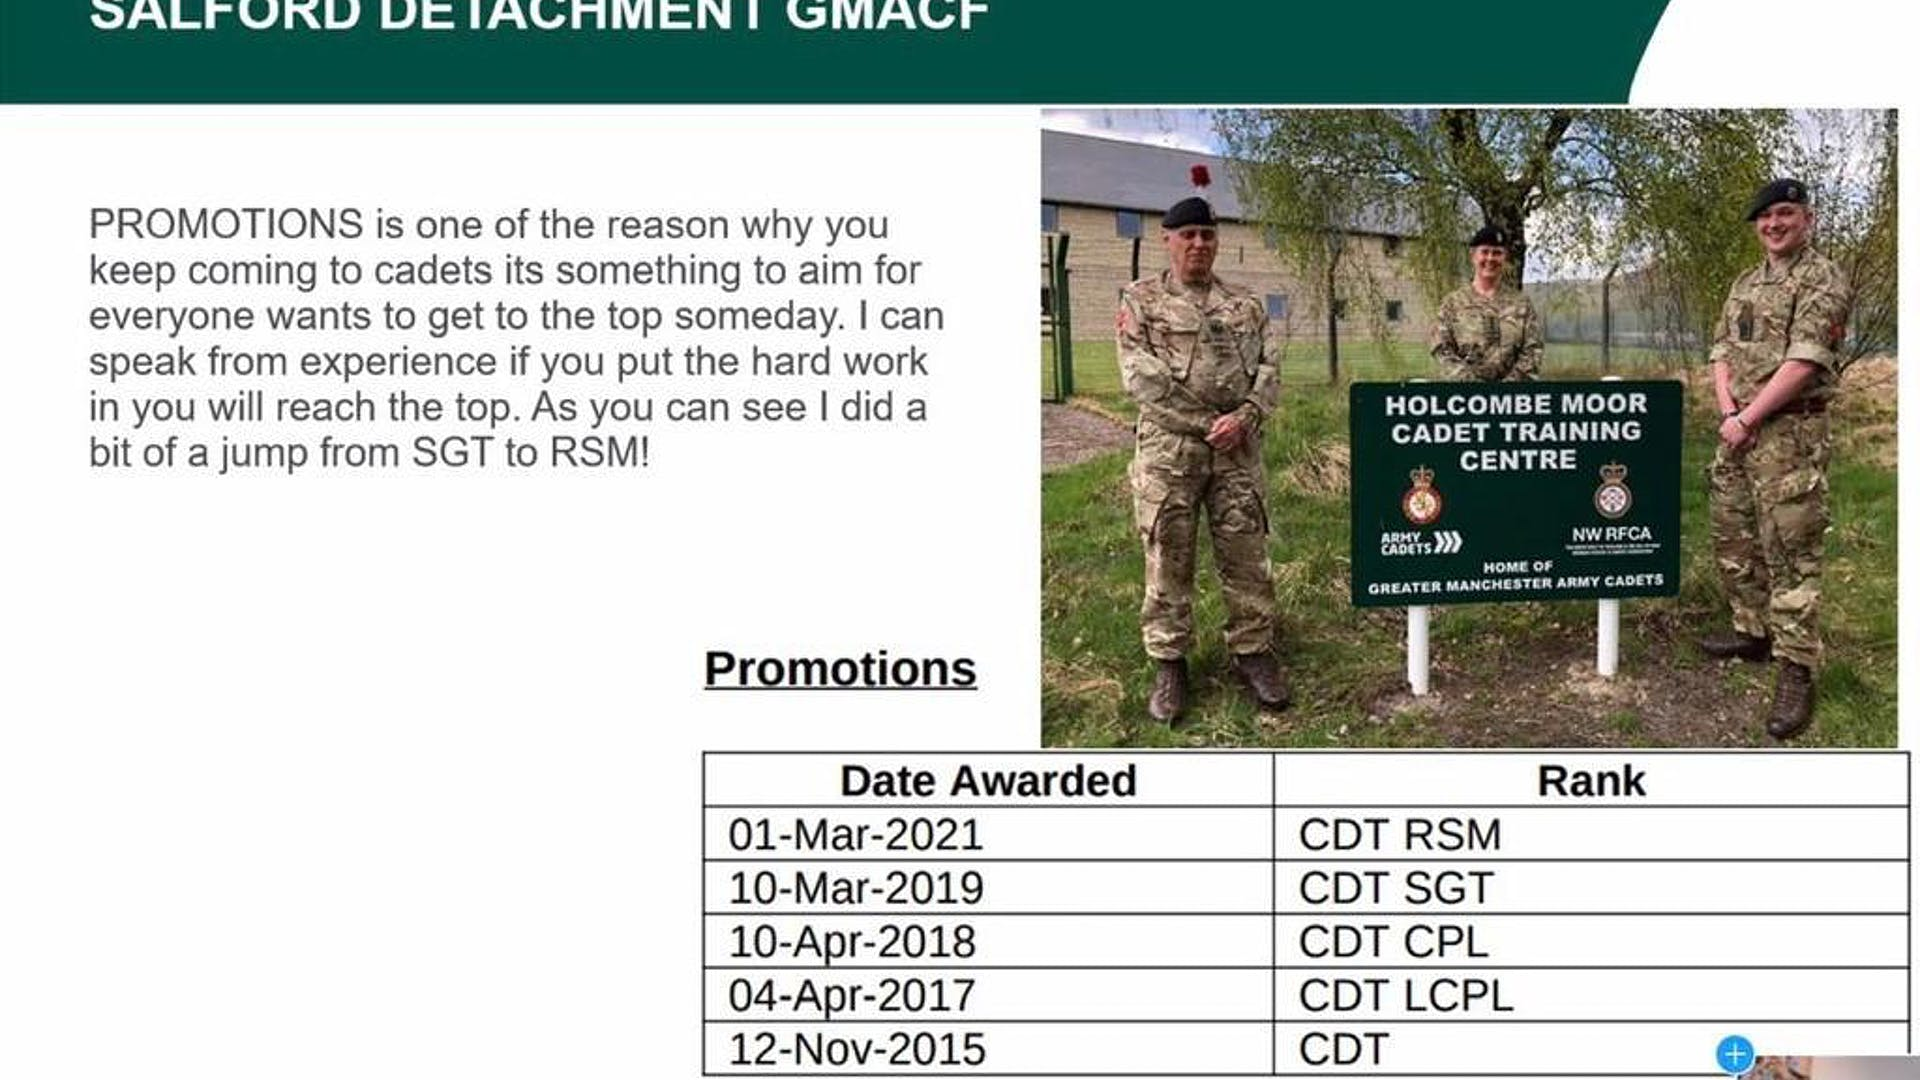 Talk to cadets by Cadet RSM May 2021 3